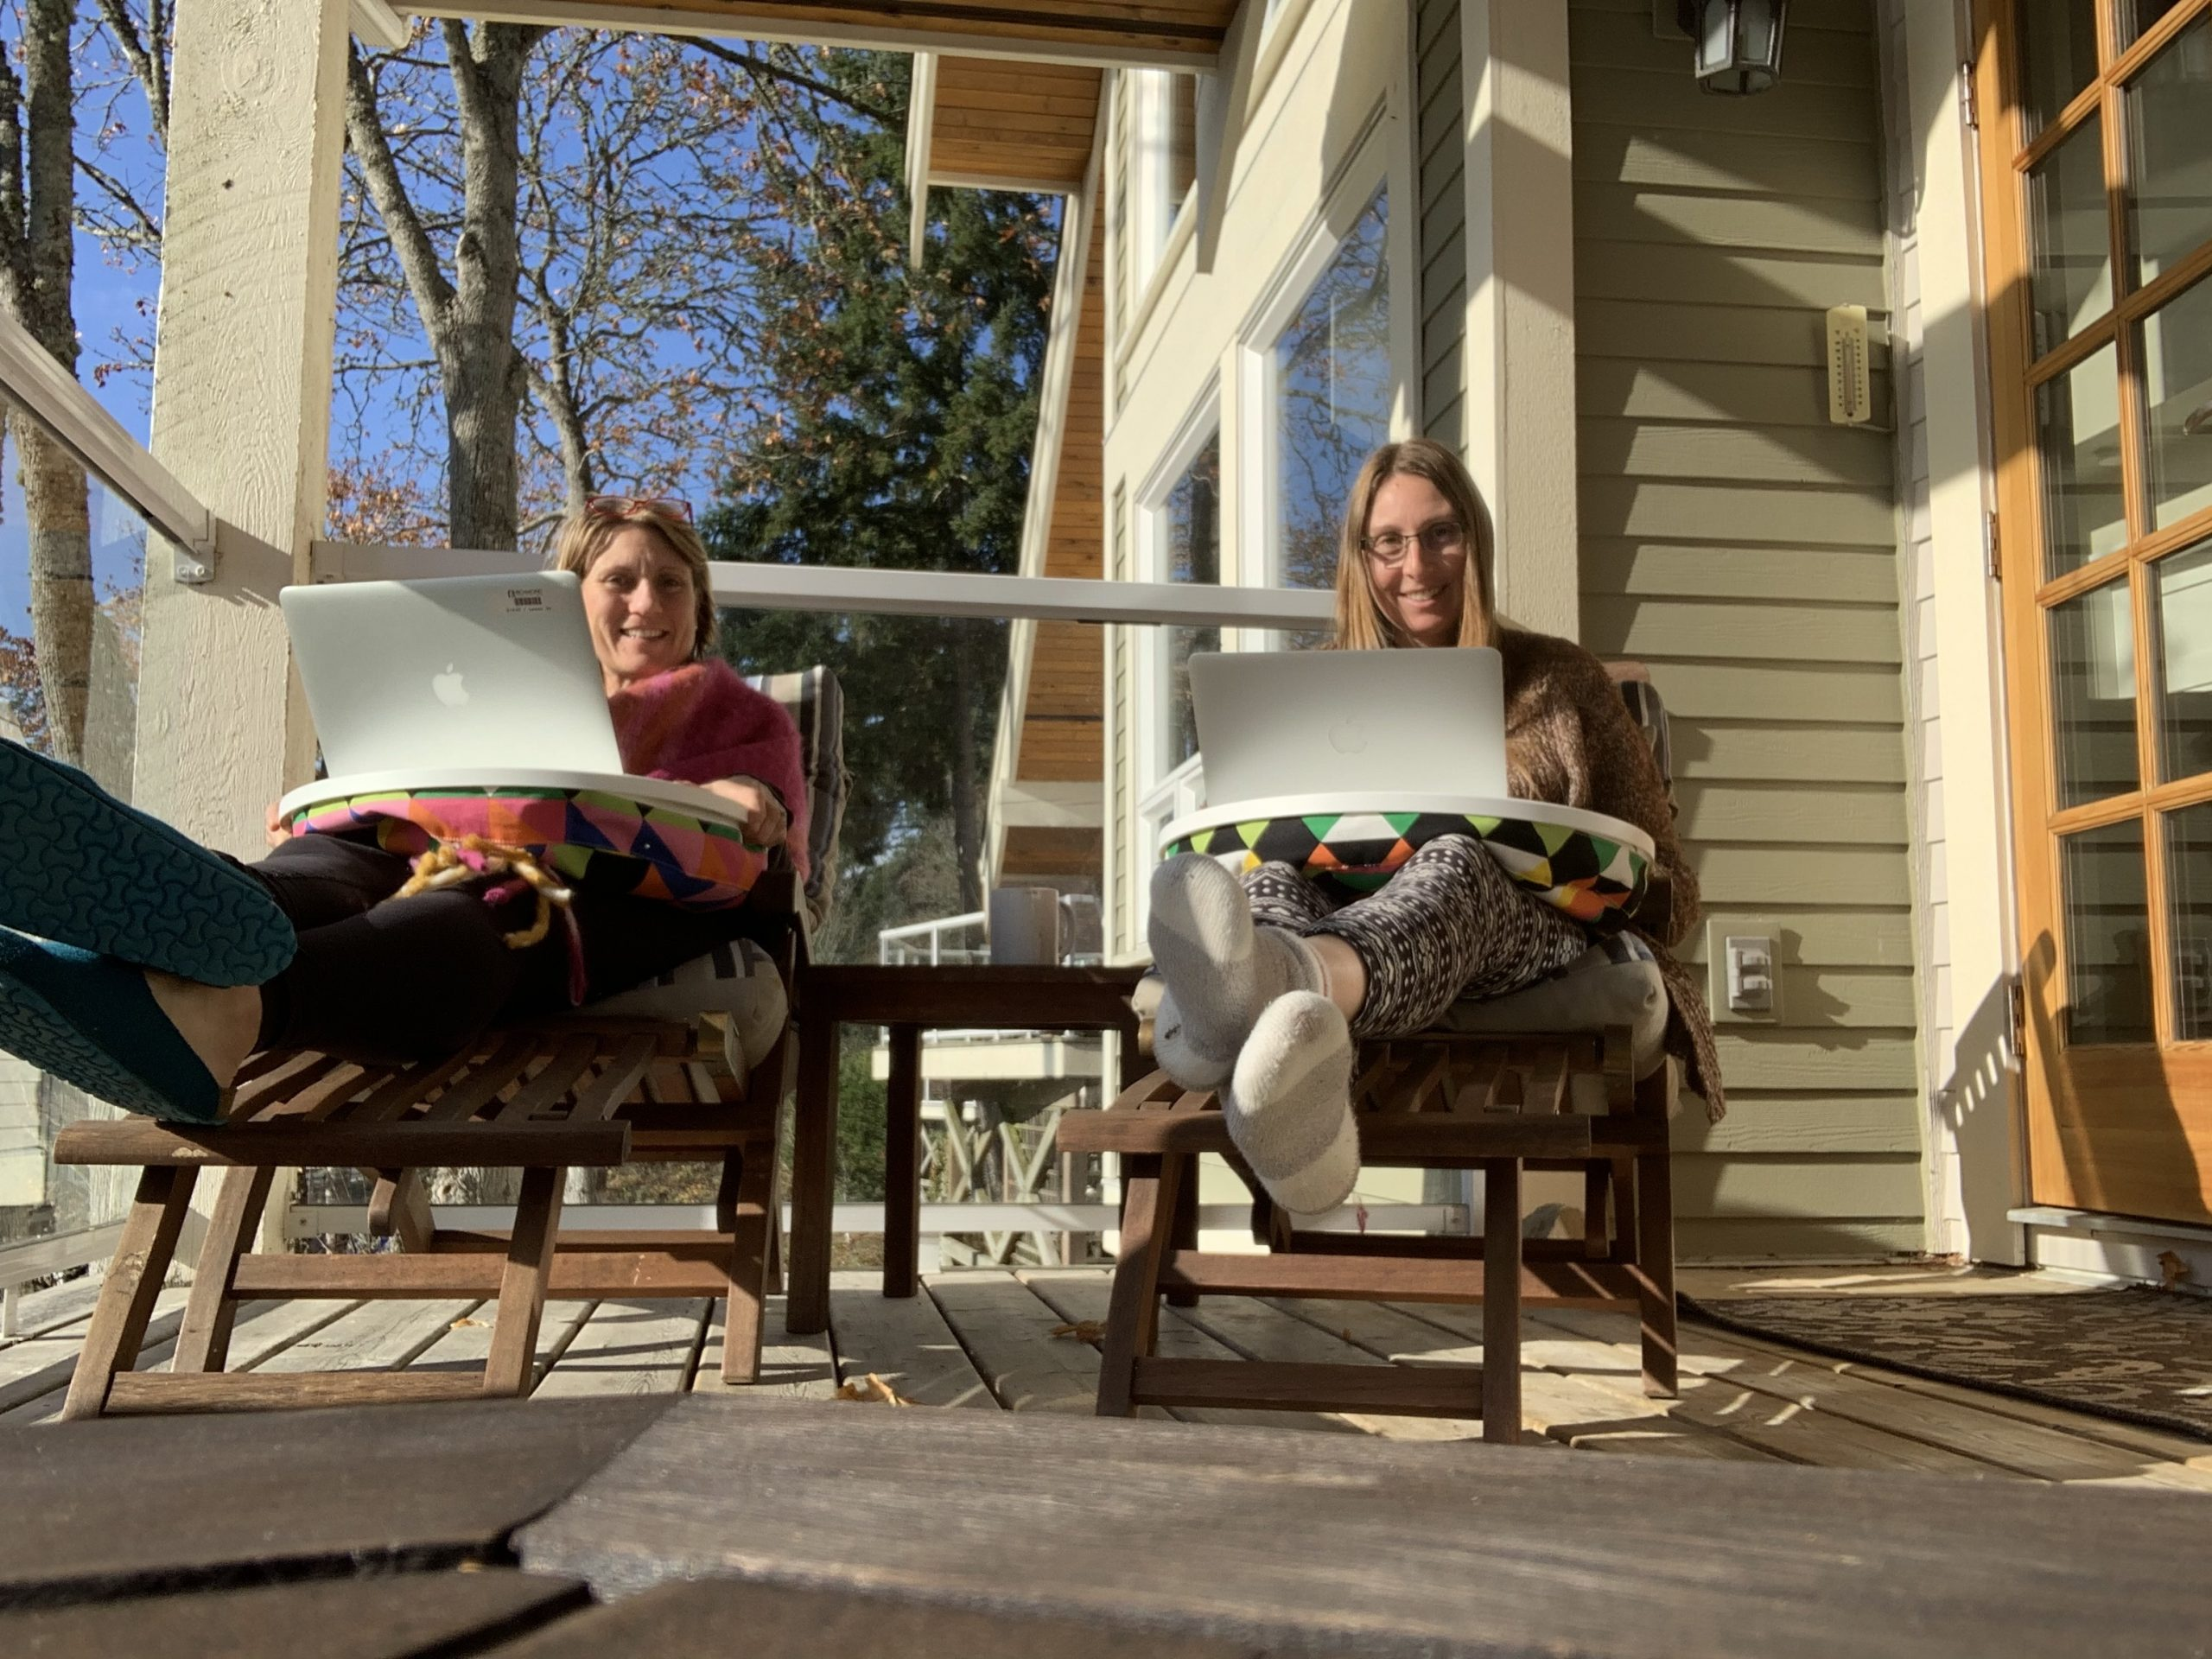 Elspeth and Rowena sitting in lounge chairs on the deck, both typing on laptops